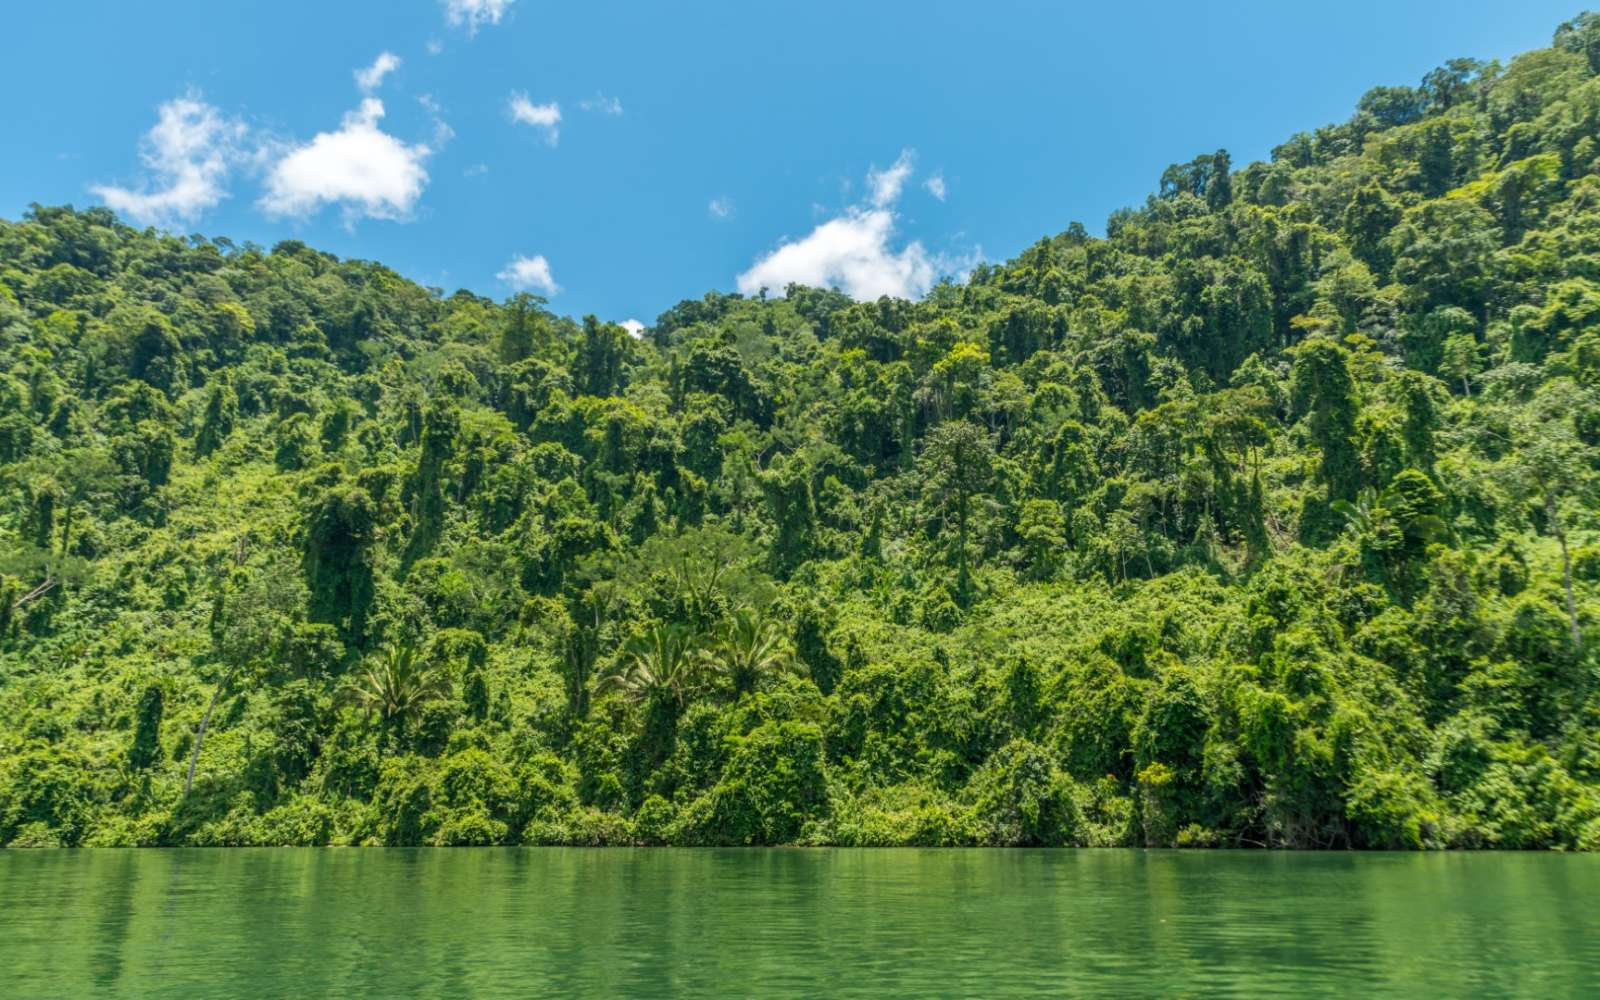 The banks of the Rio Dulce near Livingston, Guatemala